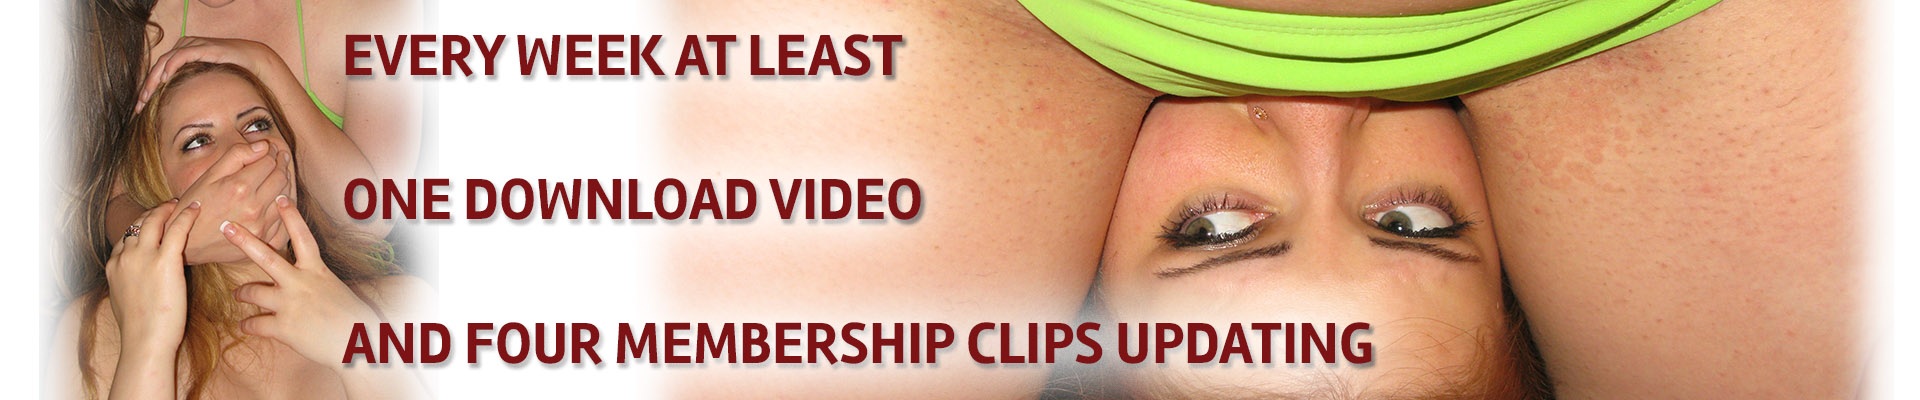 every week at least one download video and four membership clips updating